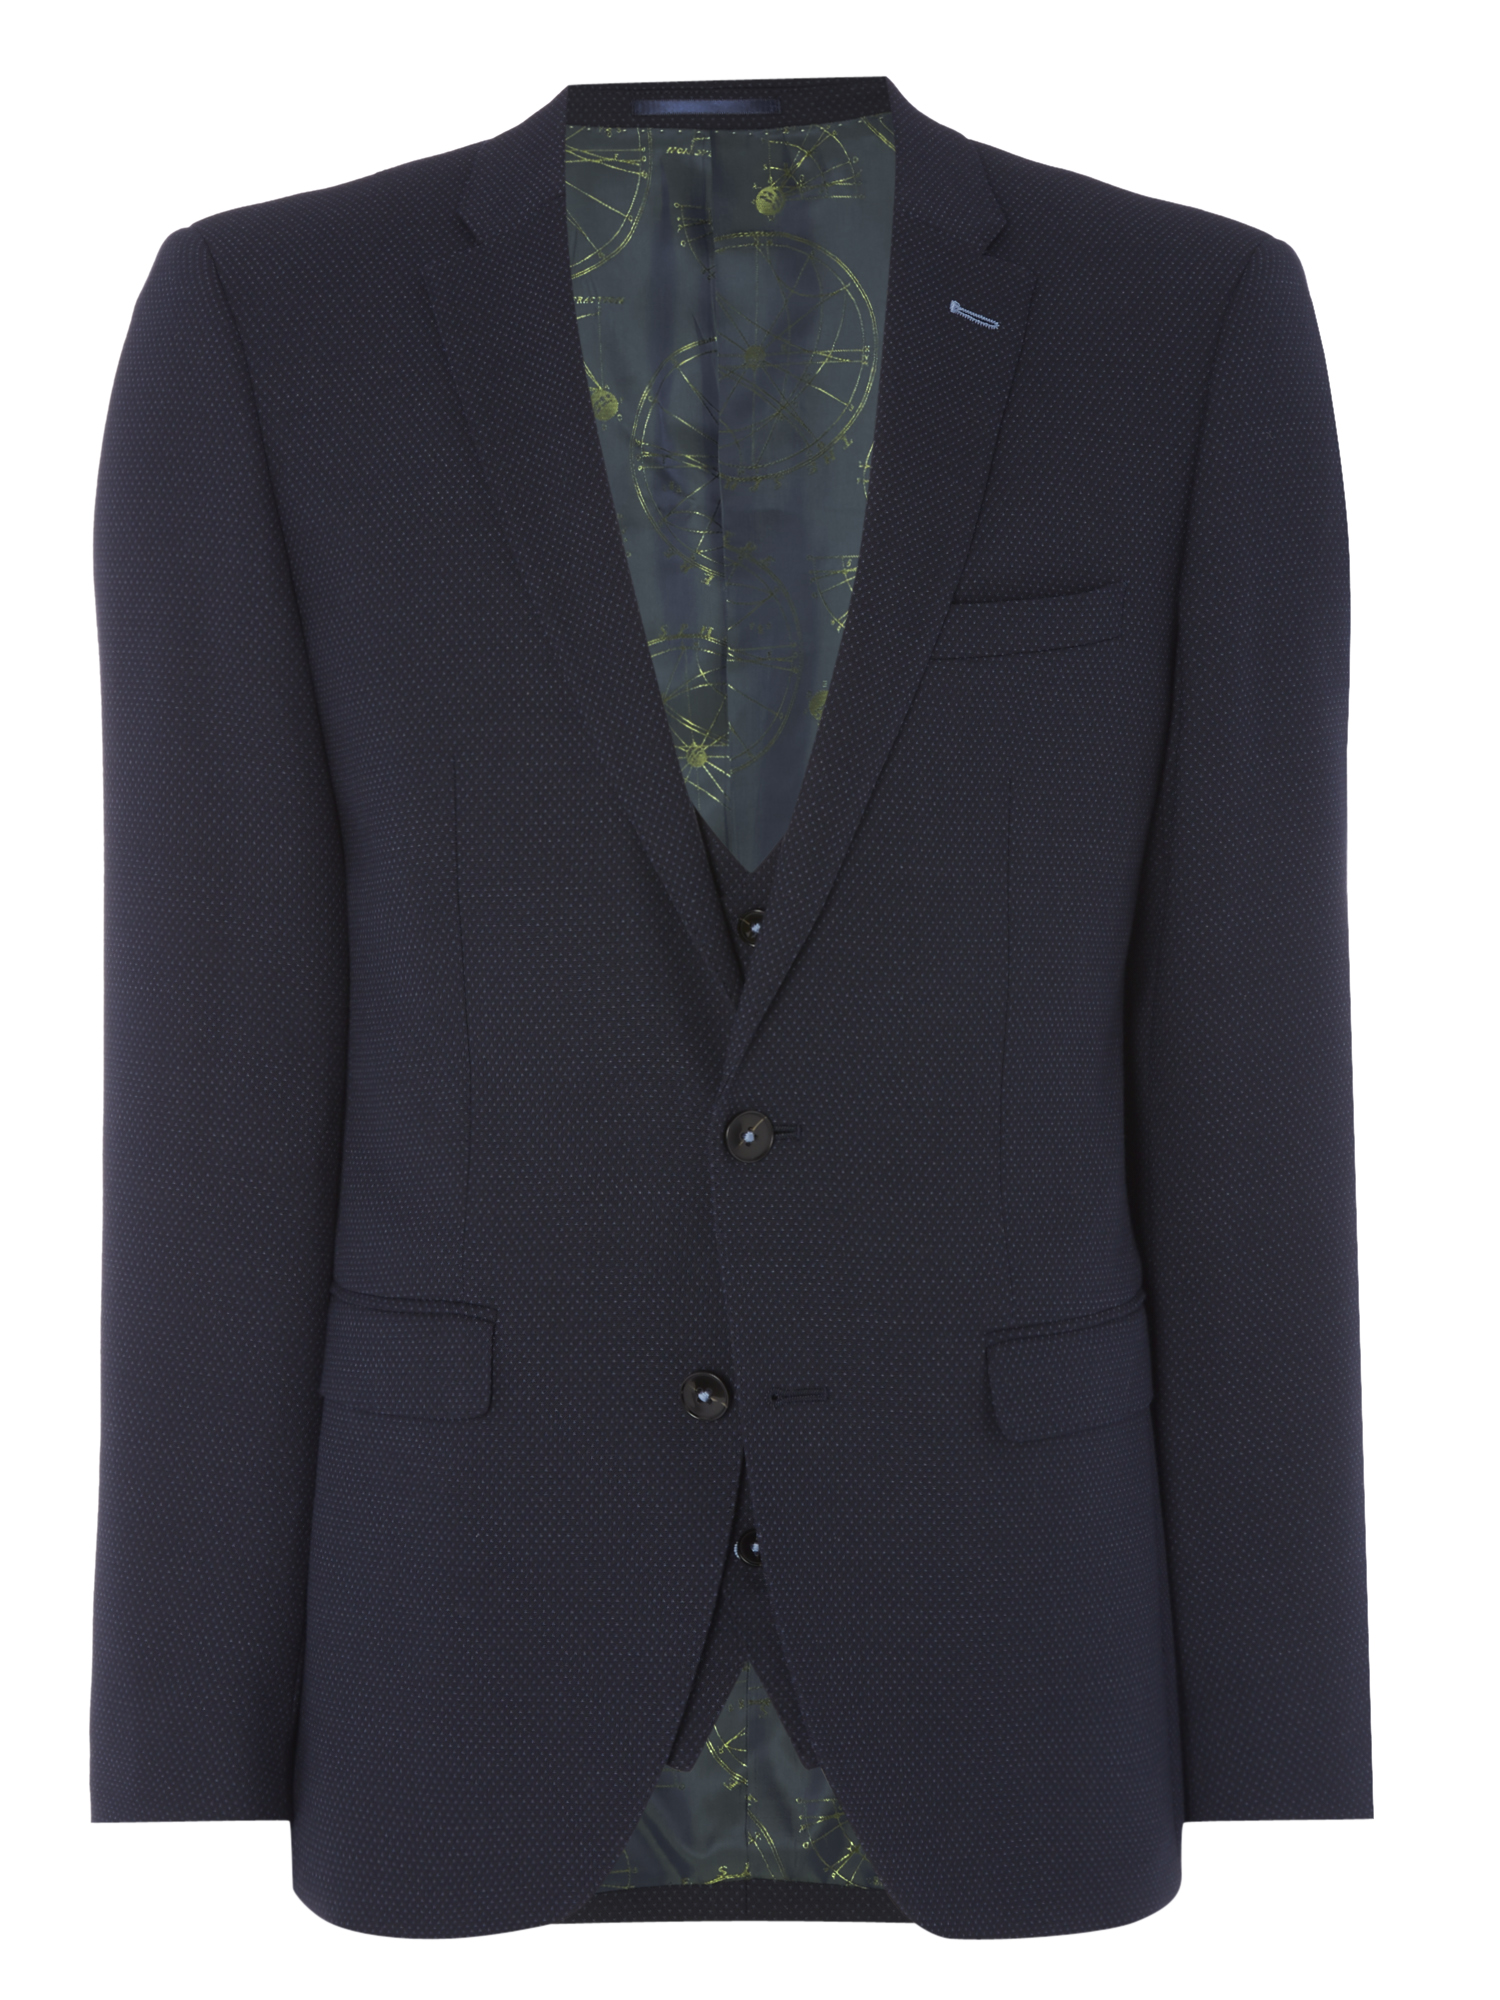 X-slim fit wool-rich stretch mix n match suit